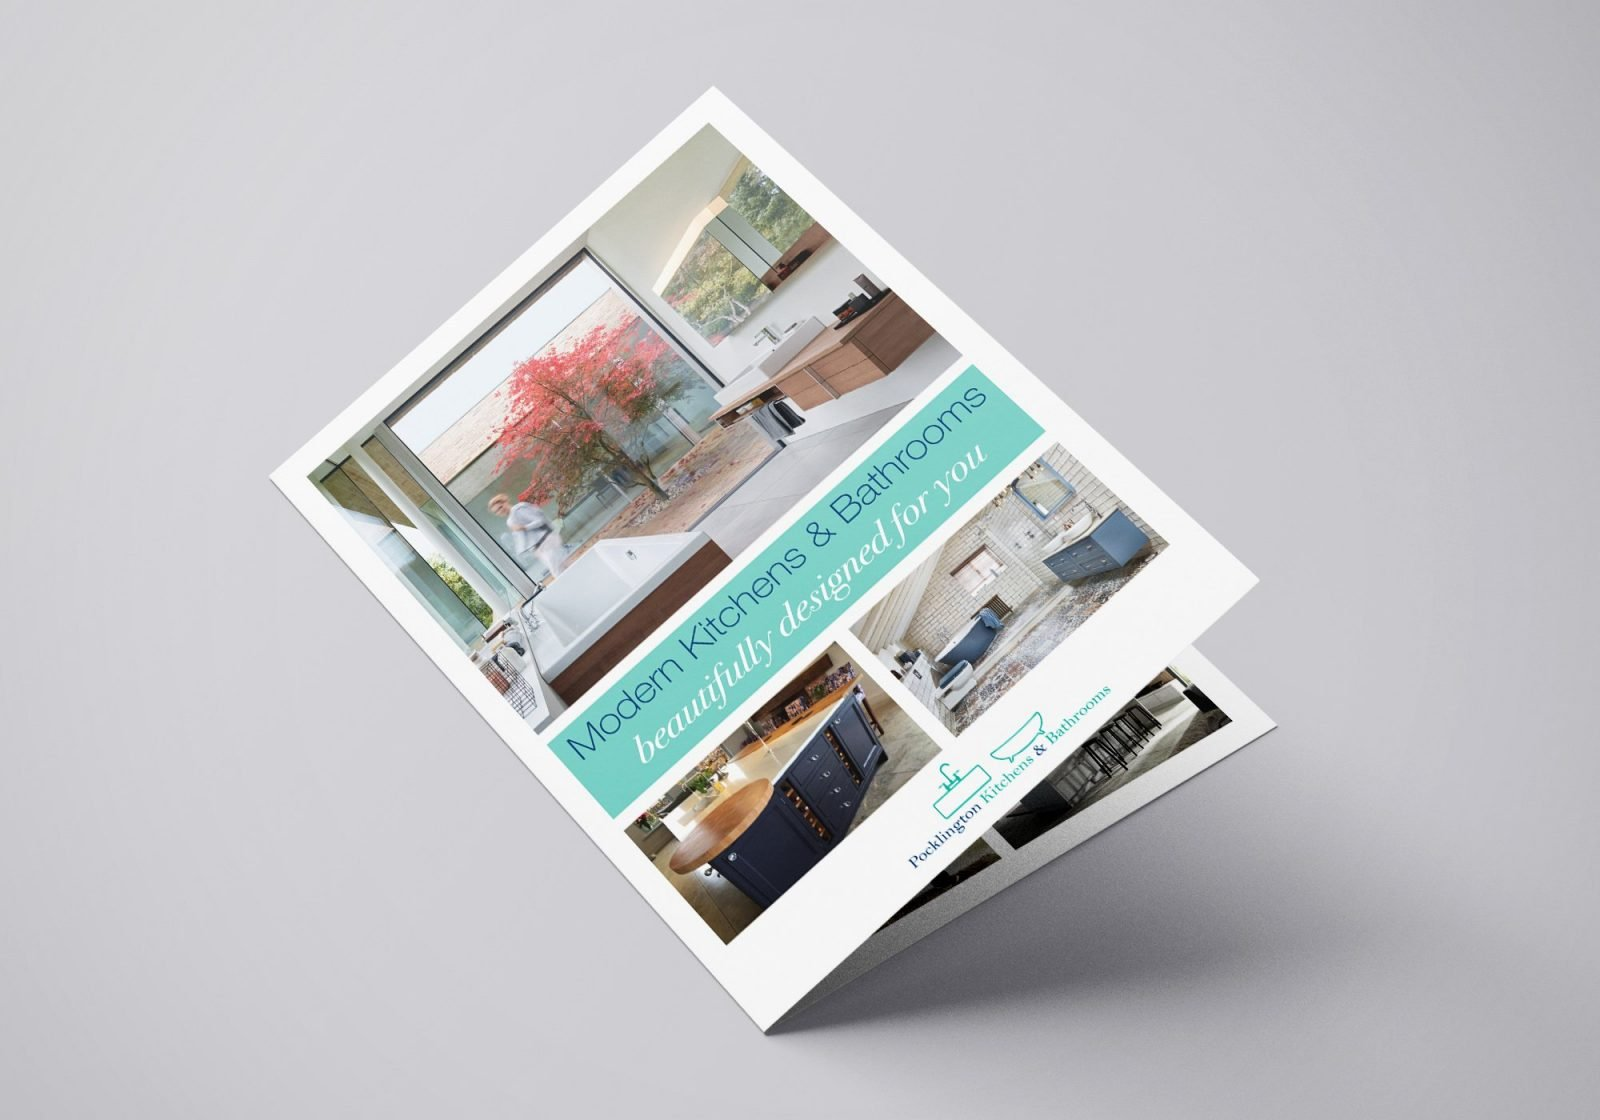 A4 Brochure for Pocklington Bathrooms and Kitchens showing the front page